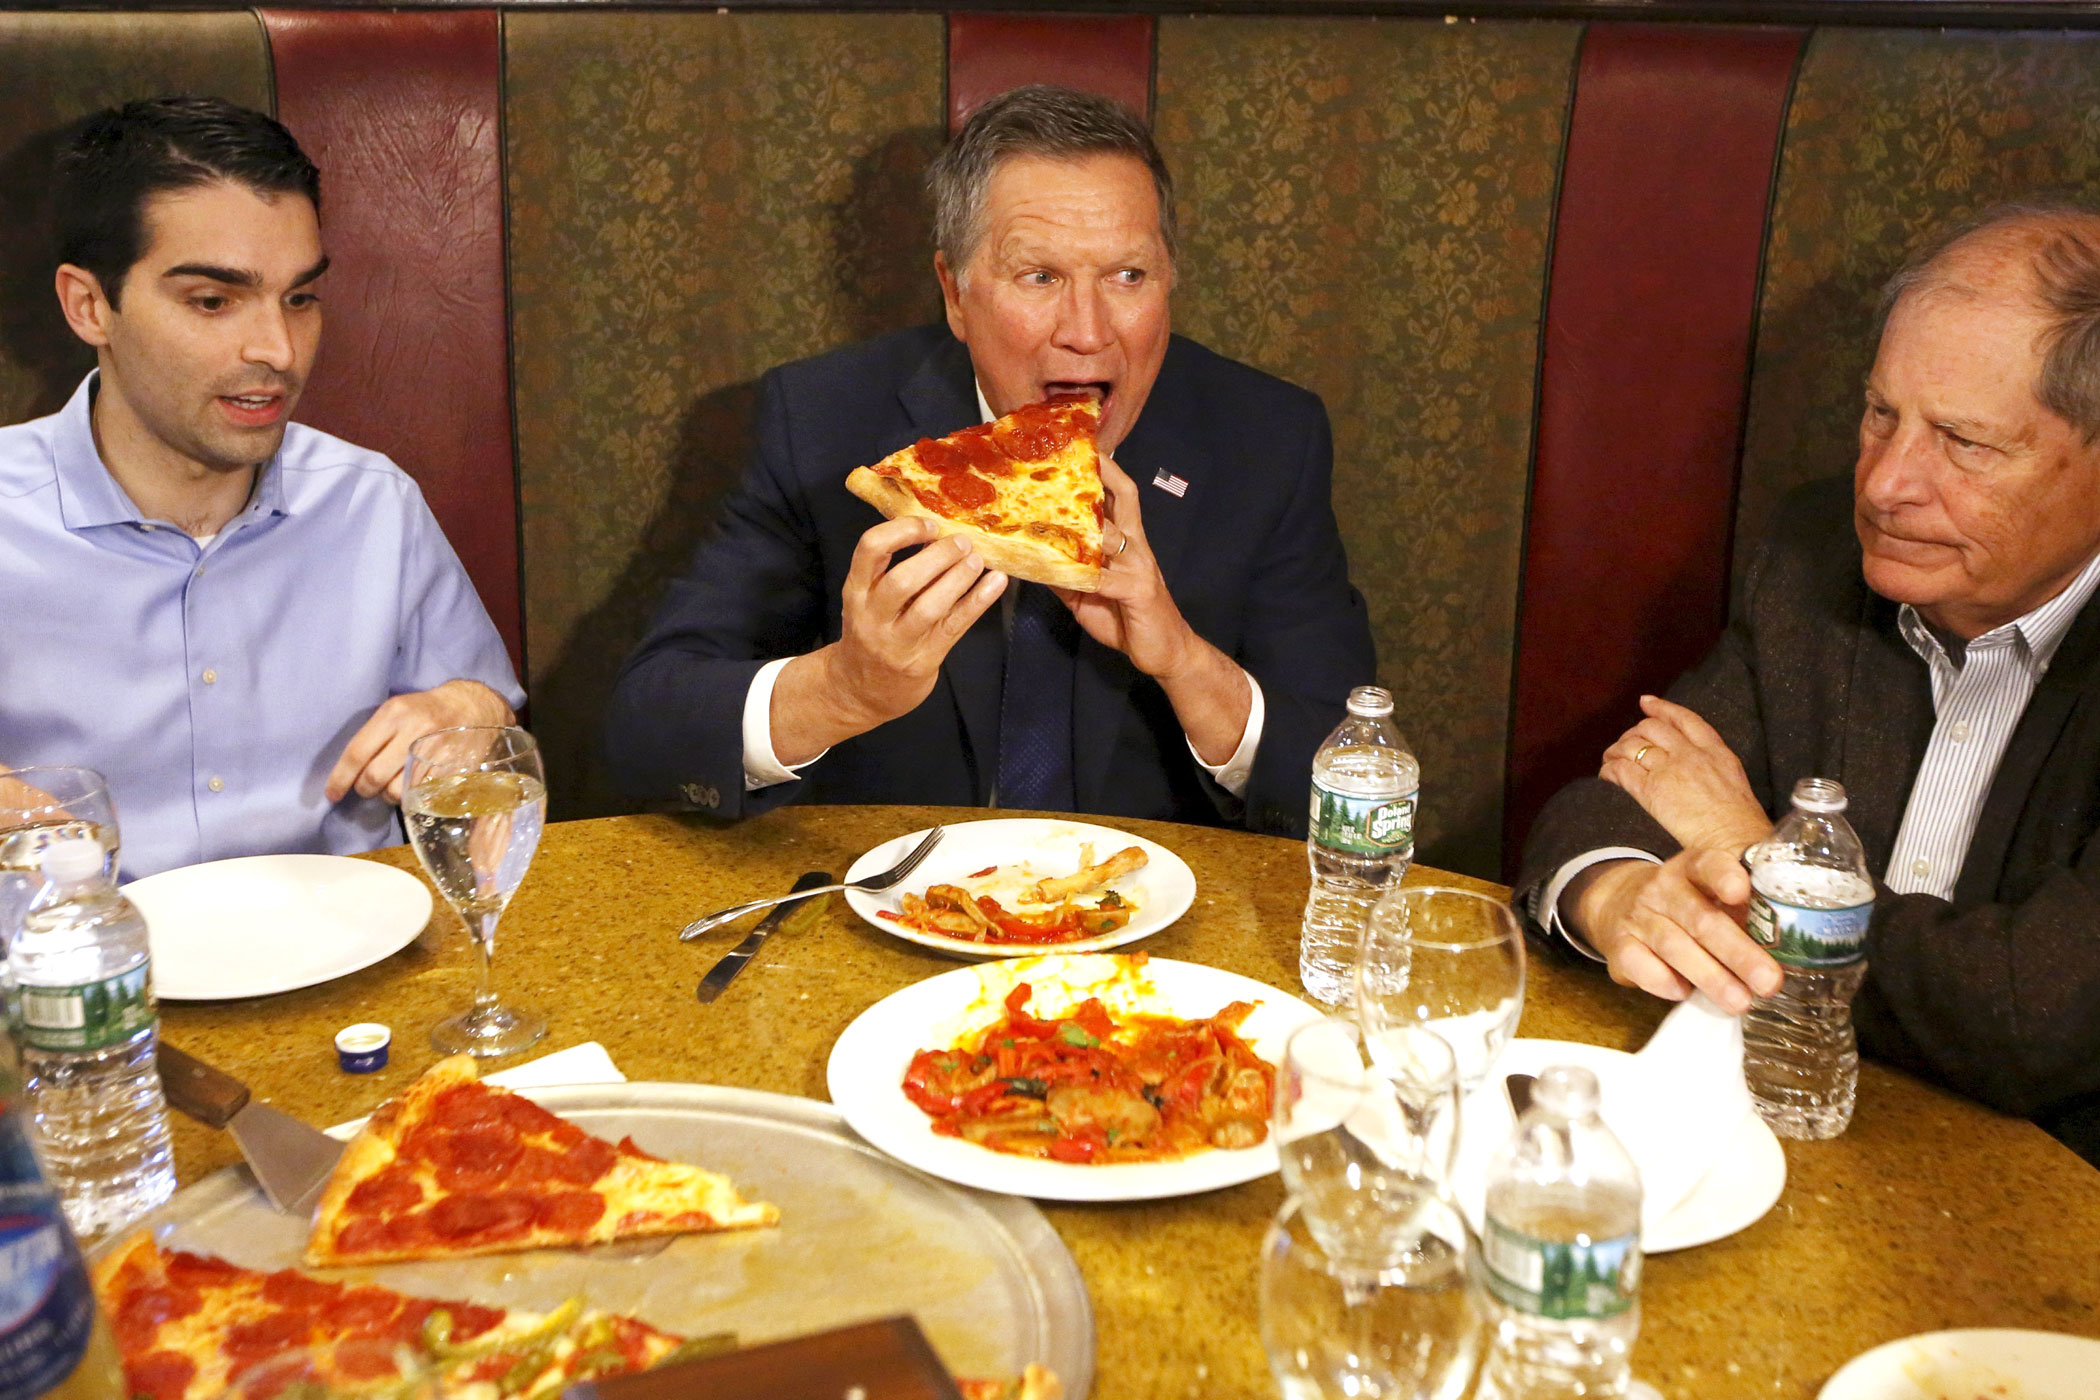 Republican presidential candidate, Ohio Gov. John Kasich eats a slice of pizza with Eric Ulrich, left, New York City Council member for the 32nd District of Queens, and former Congressman Bob Turner at Gino's Pizzeria and Restaurant in the Queens borough of New York on March 30, 2016.